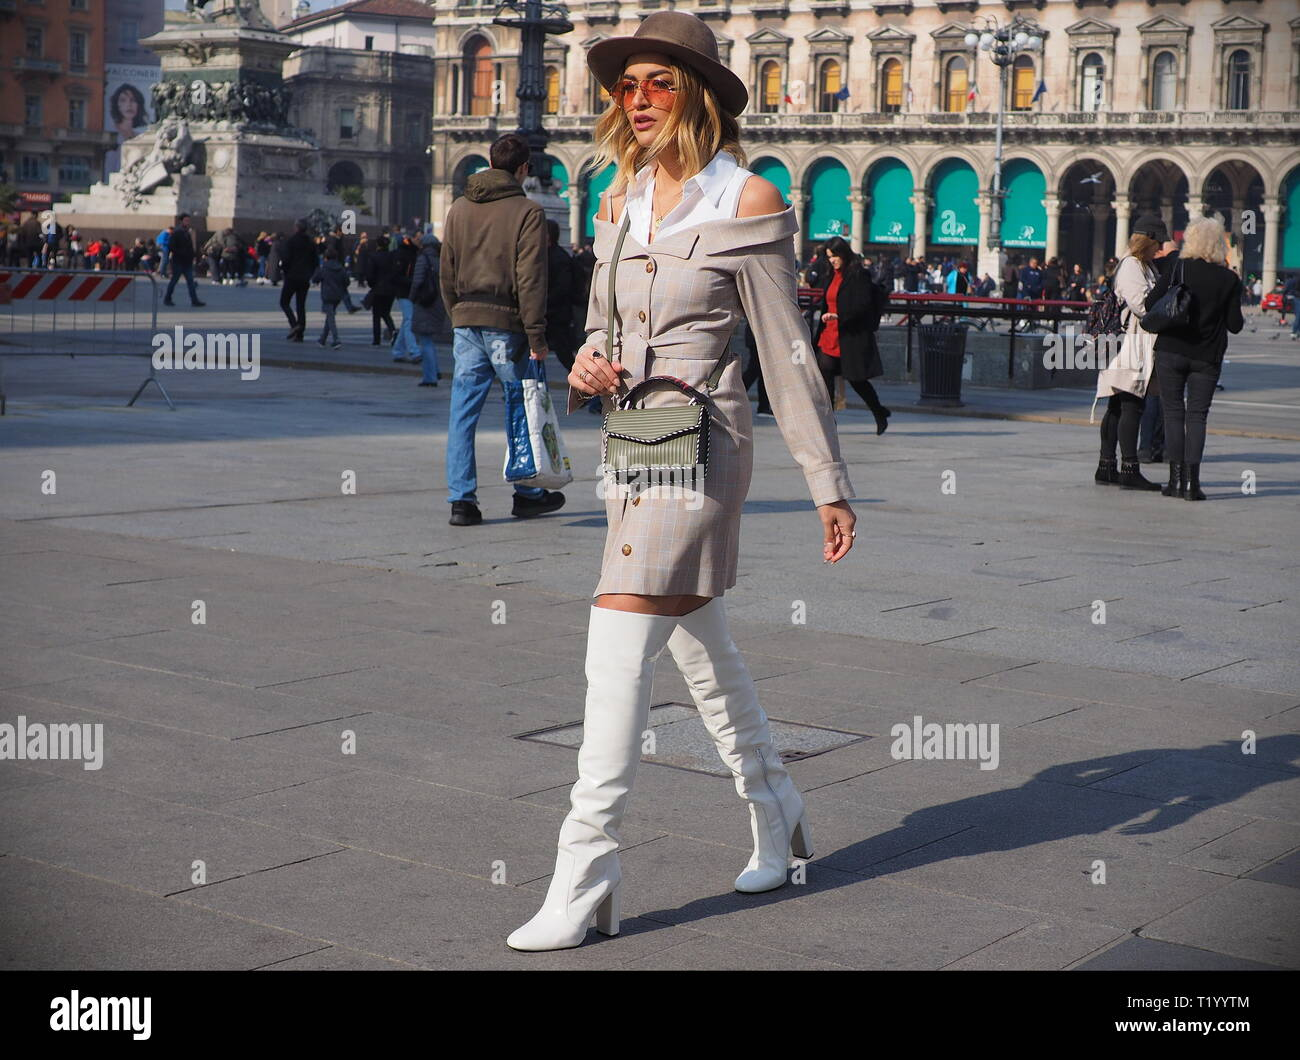 d57c653813c Models Street Style Stock Photos   Models Street Style Stock Images ...